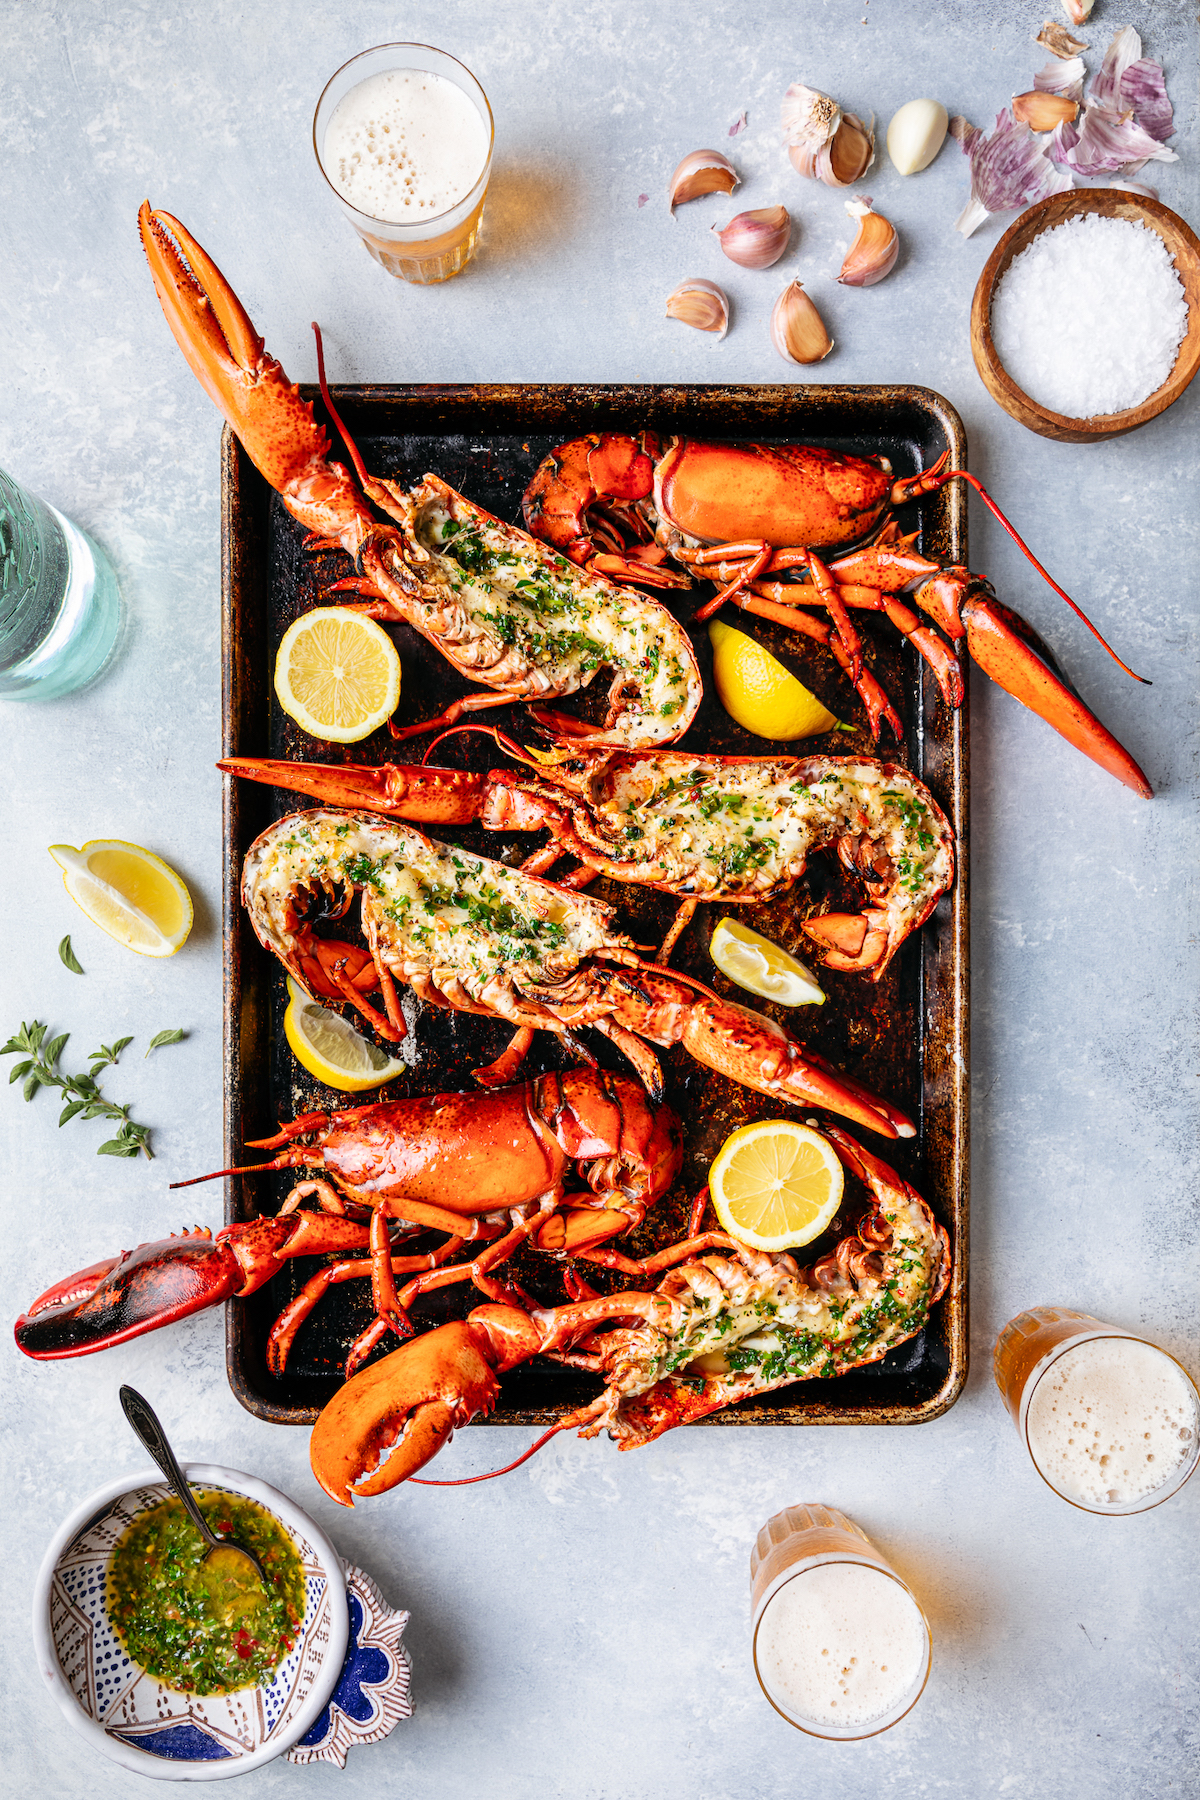 Split Whole Broiled Maine Lobster with Lemon Herb Butter